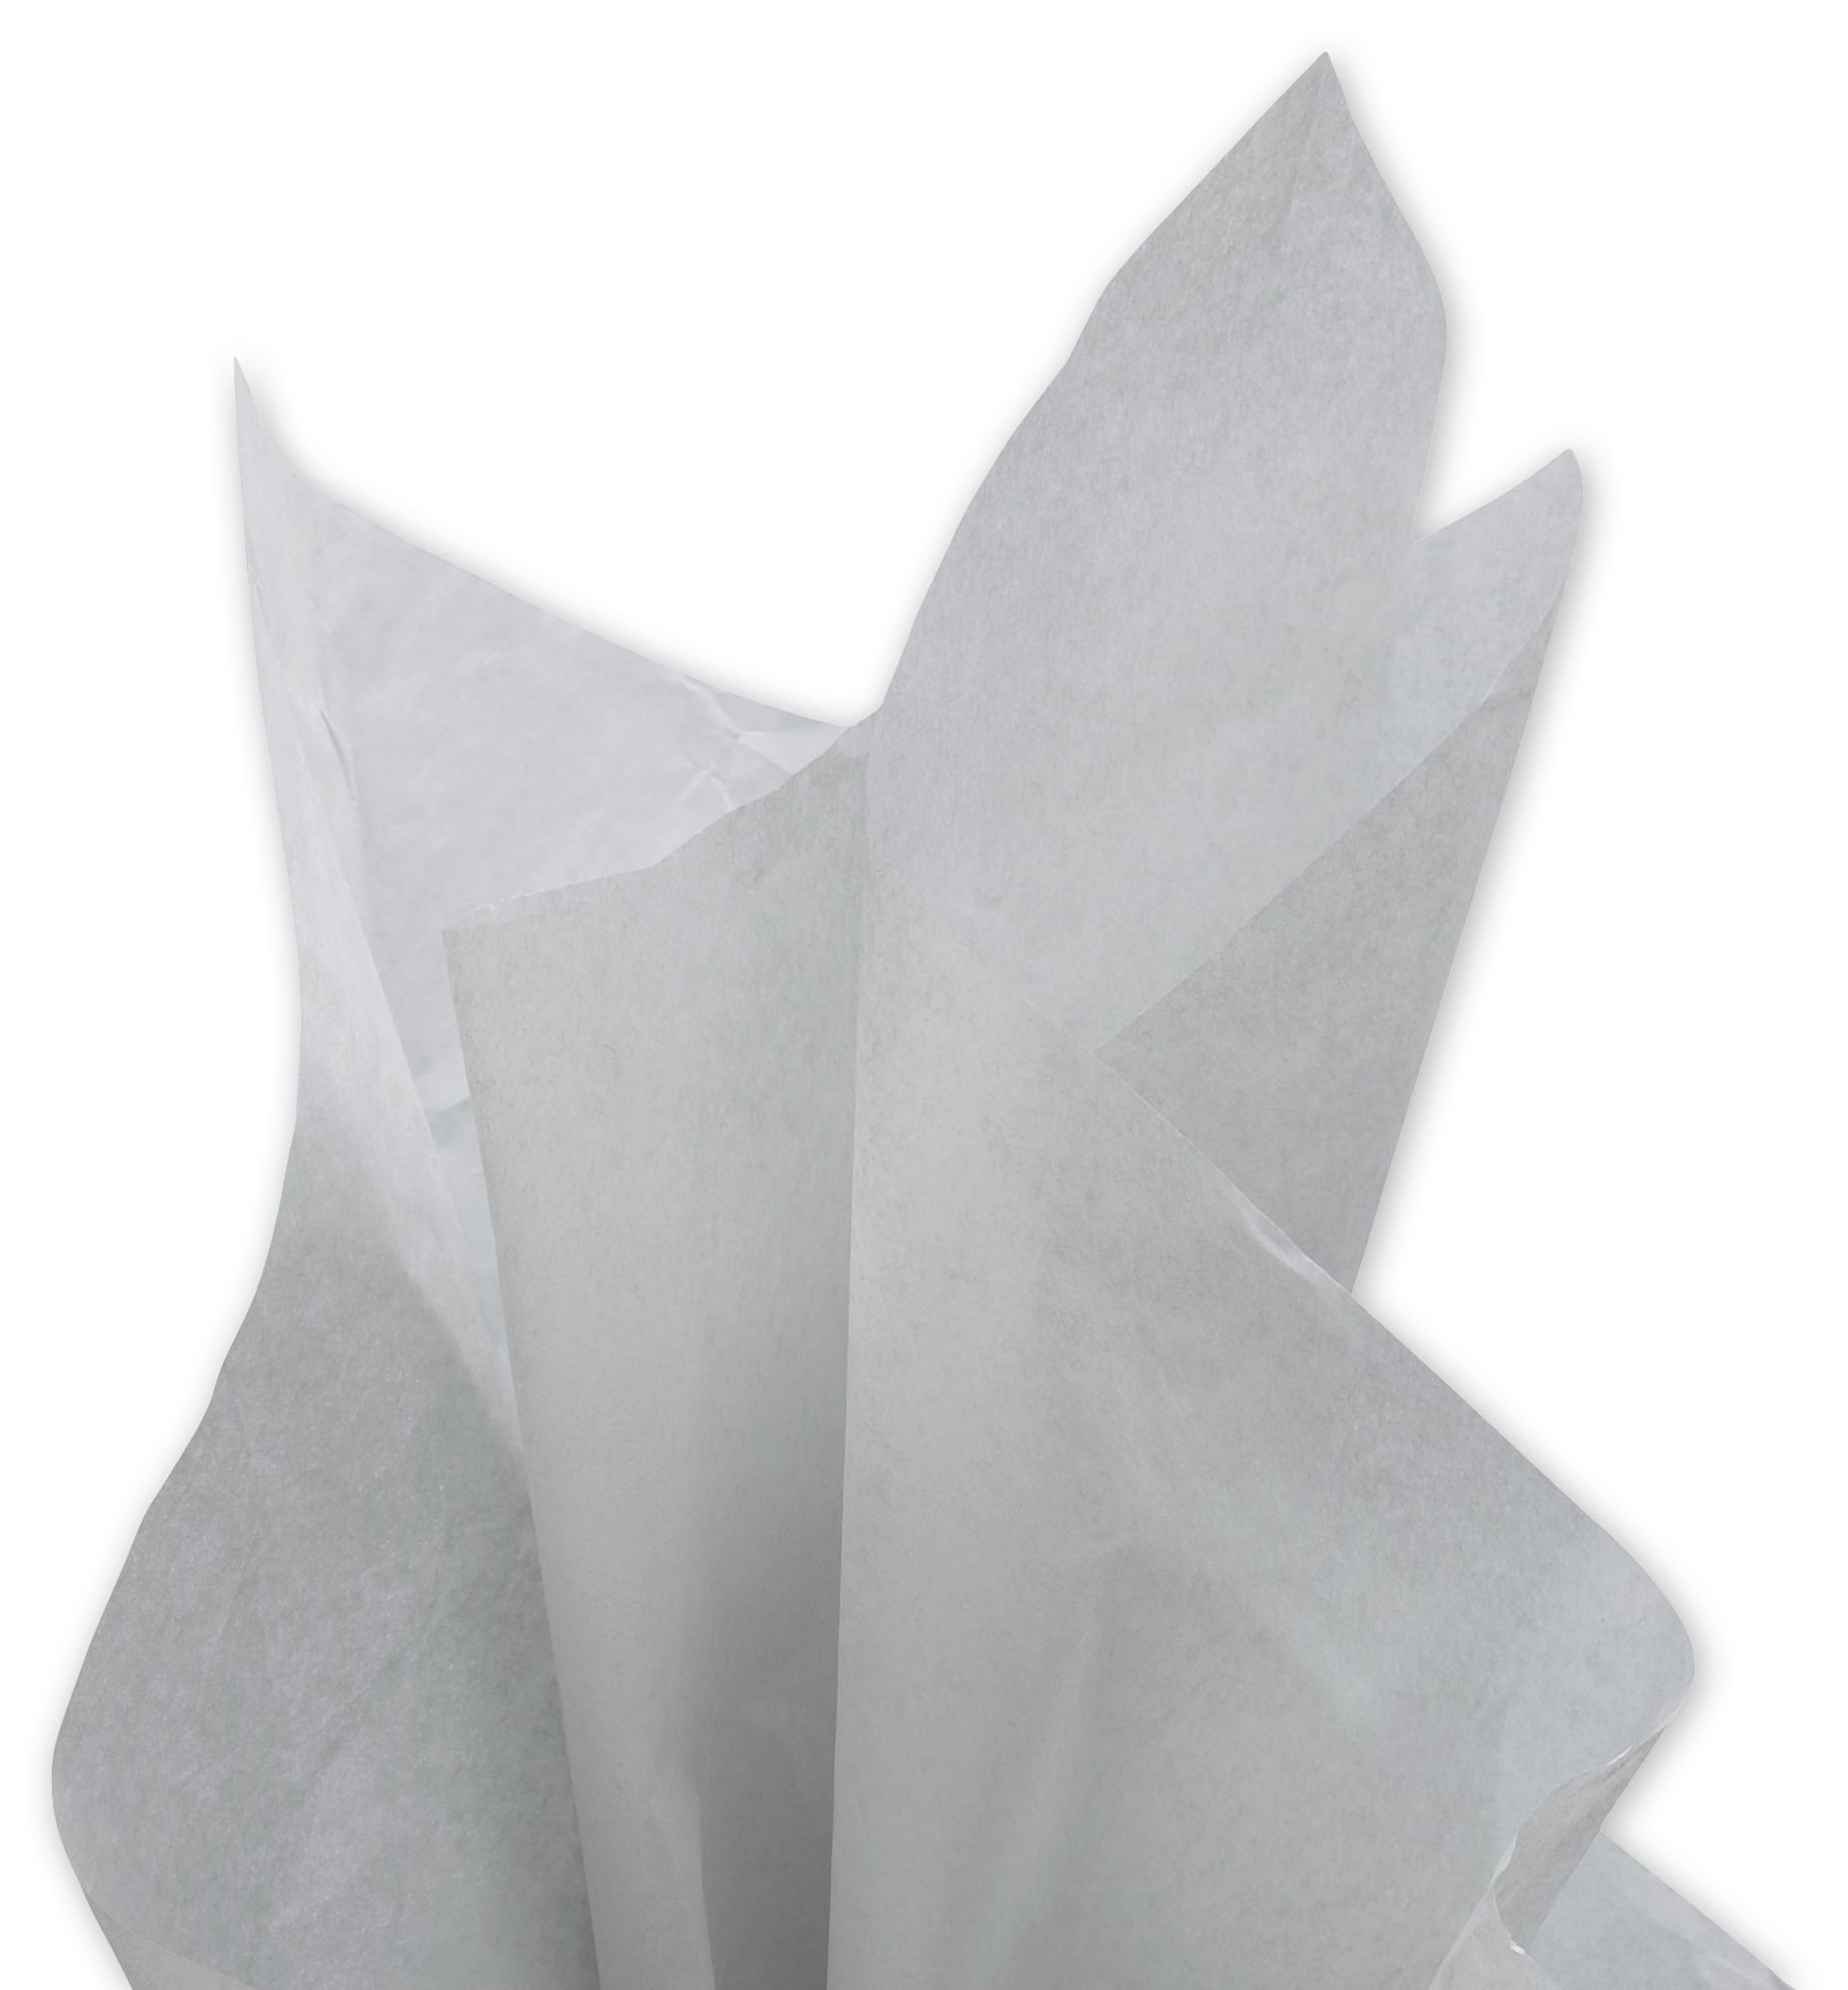 Grey Gray Bulk Tissue Paper 15 Inches x 20 Inches - 100 Sheets